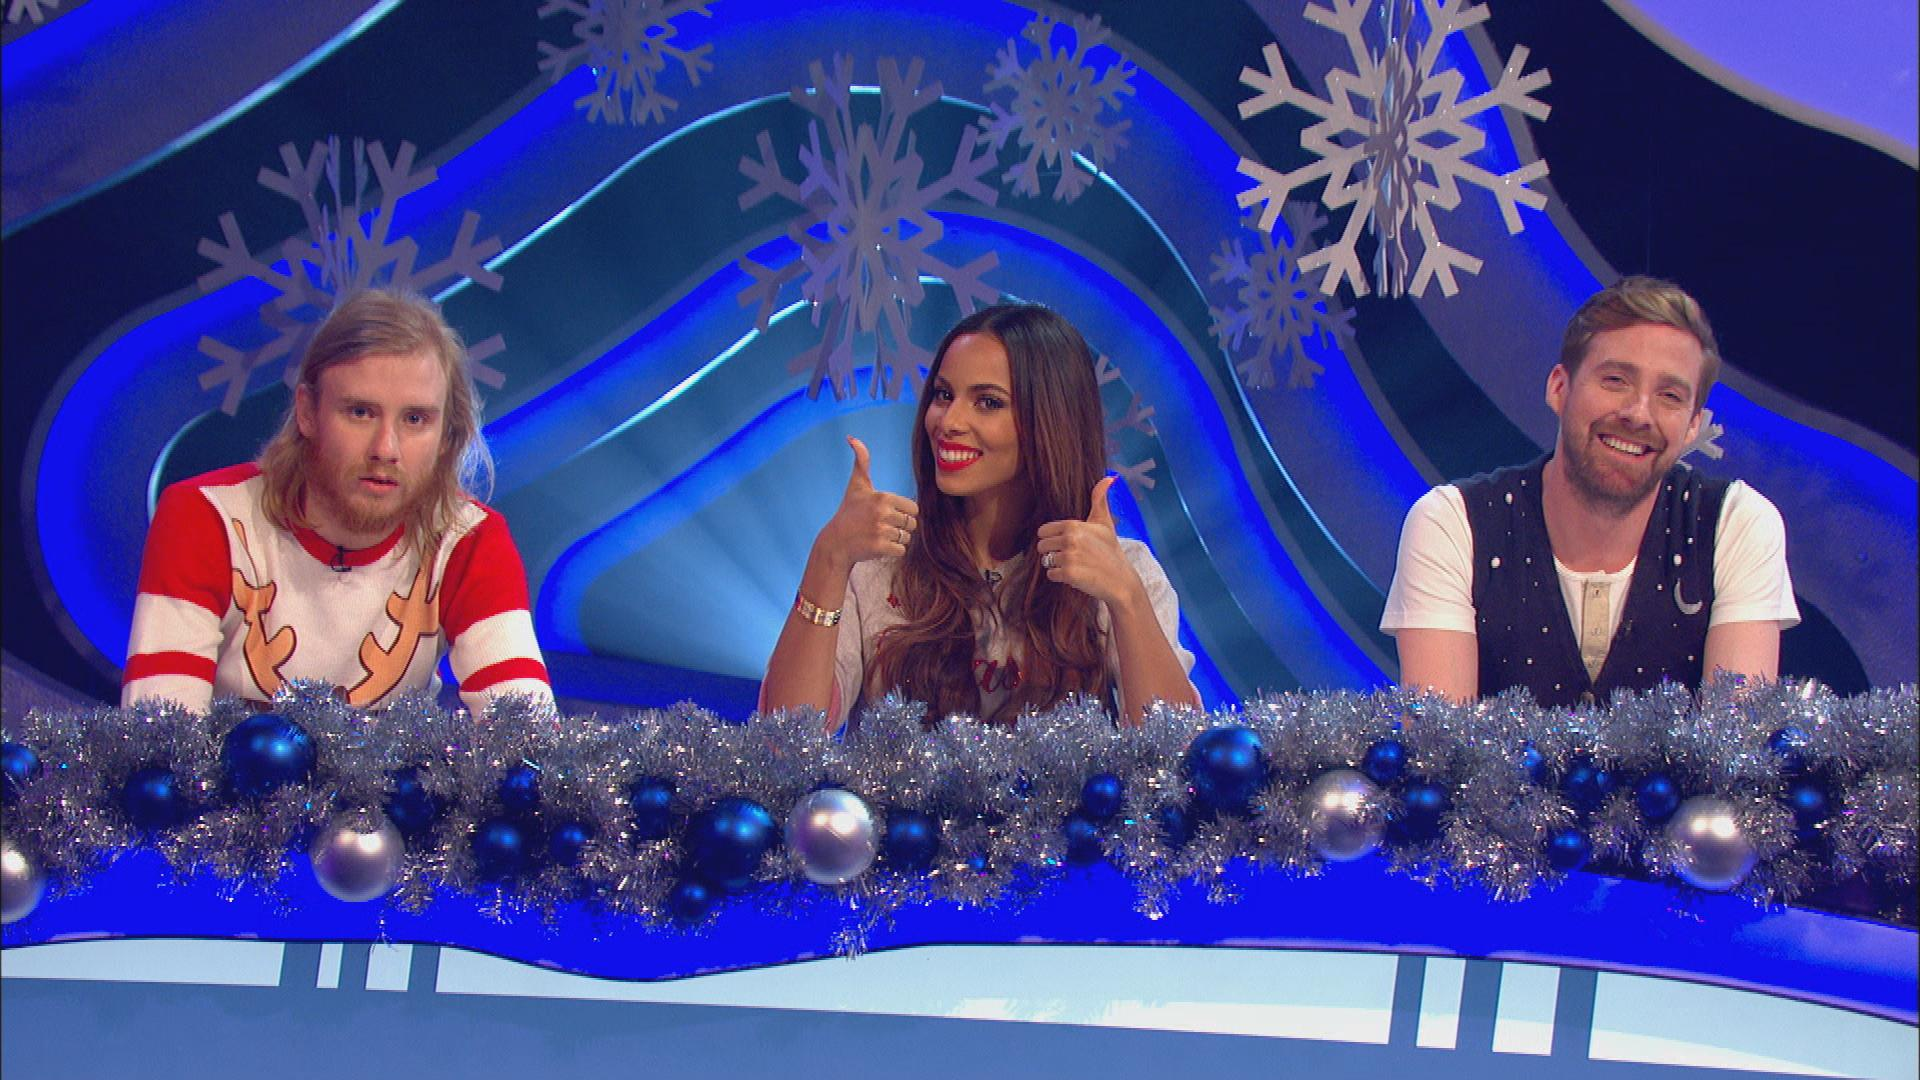 Your 9 hour warning until X-Mas kicks off!10pm SWEAT THE CHRISTMAS STUFF BBC3 @RochelleTheSats @Rickontour @BobbyMair http://t.co/6ea8CakmMW